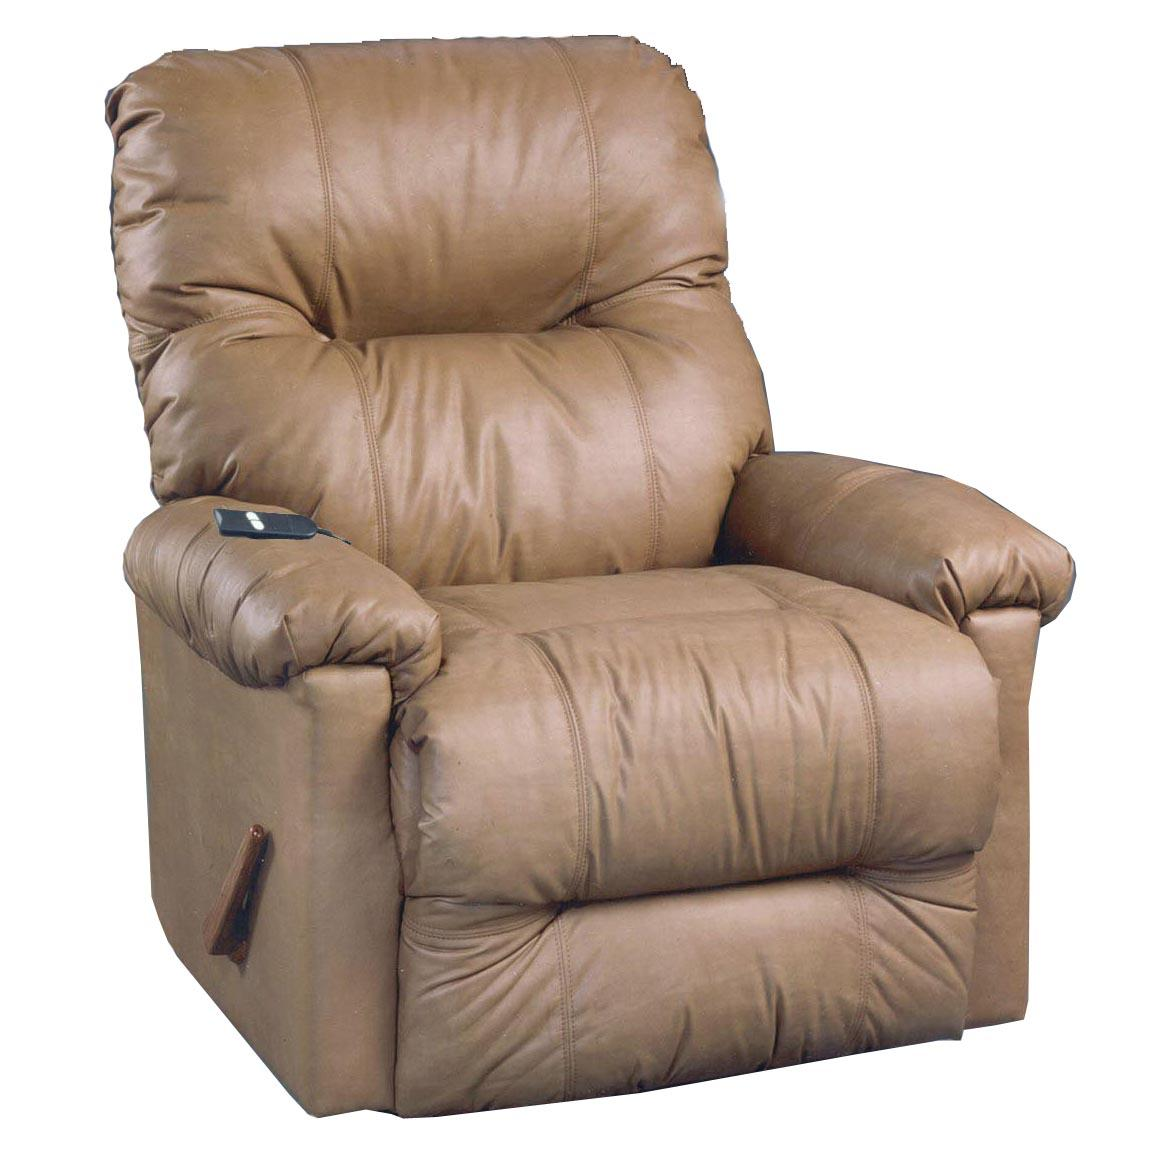 Wynette power rocking reclining chair by best home for Best home furnishings